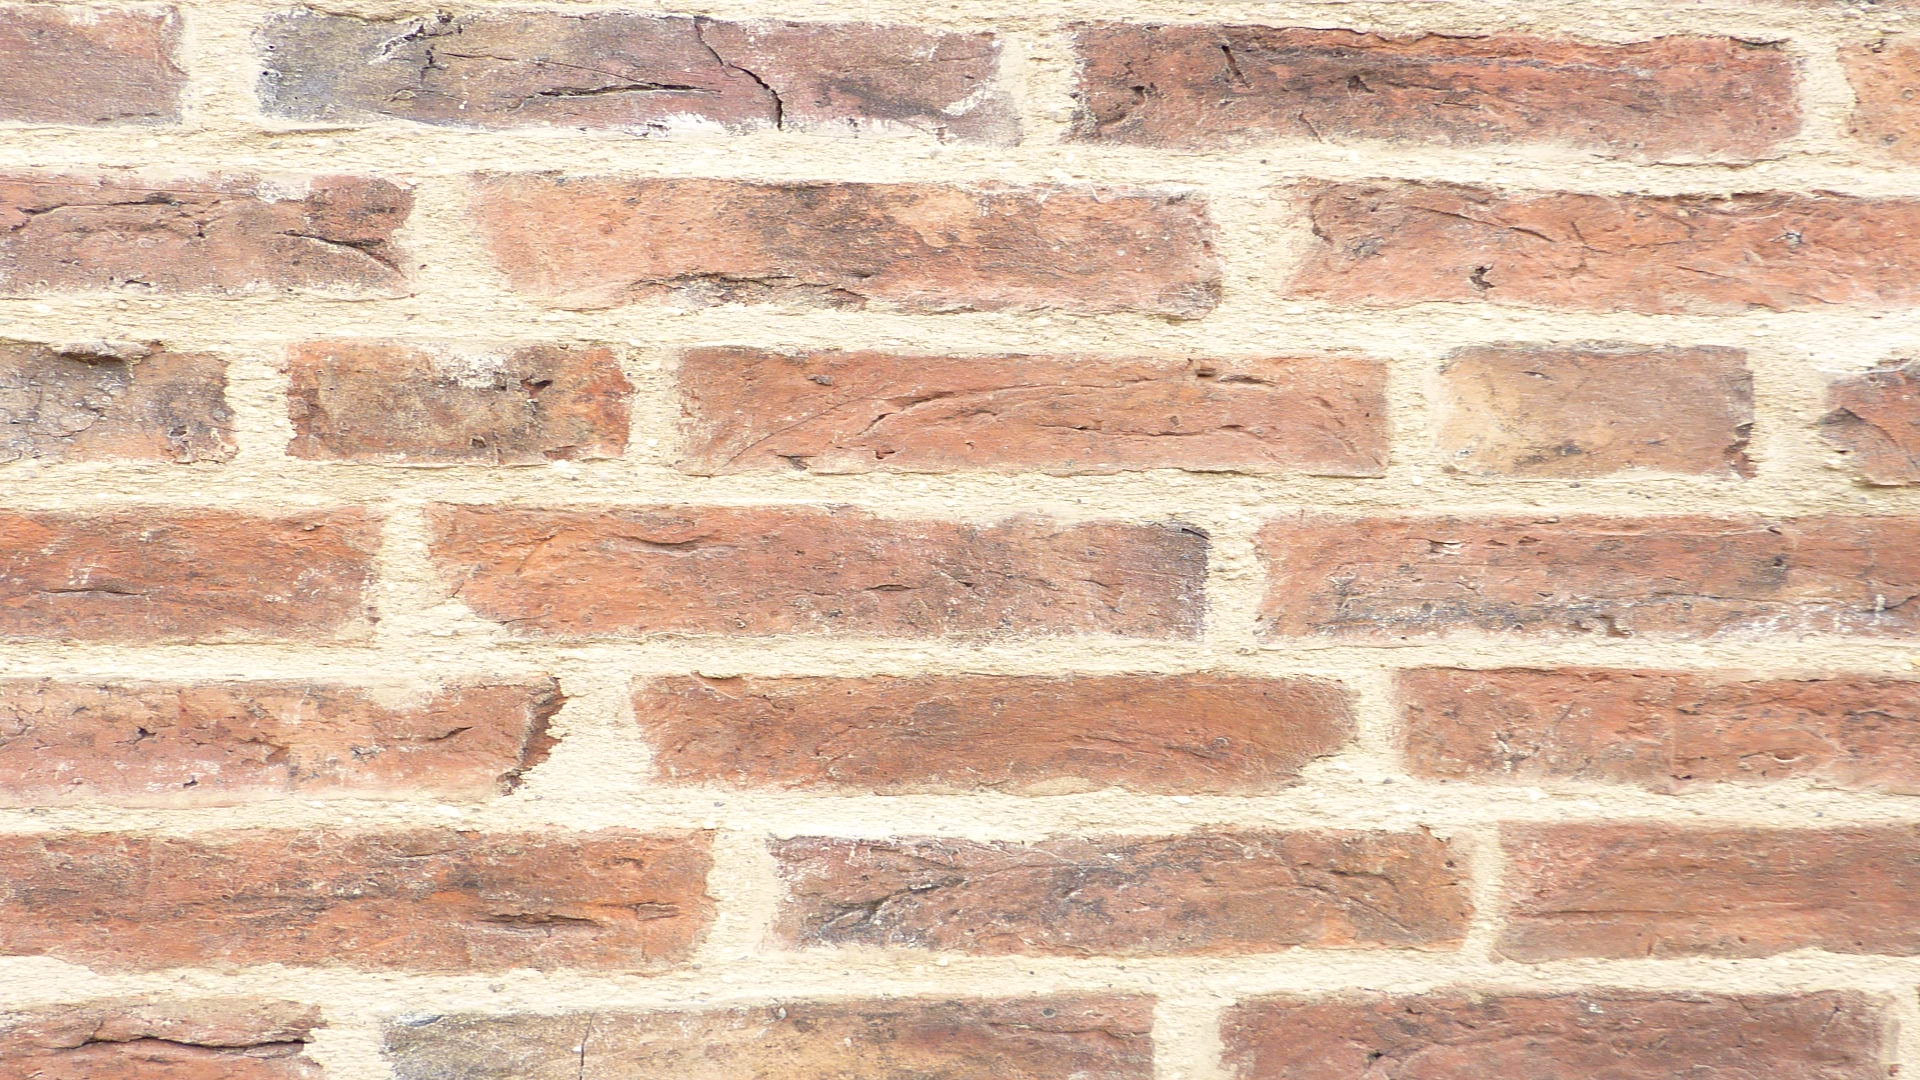 lime mortar brickwork